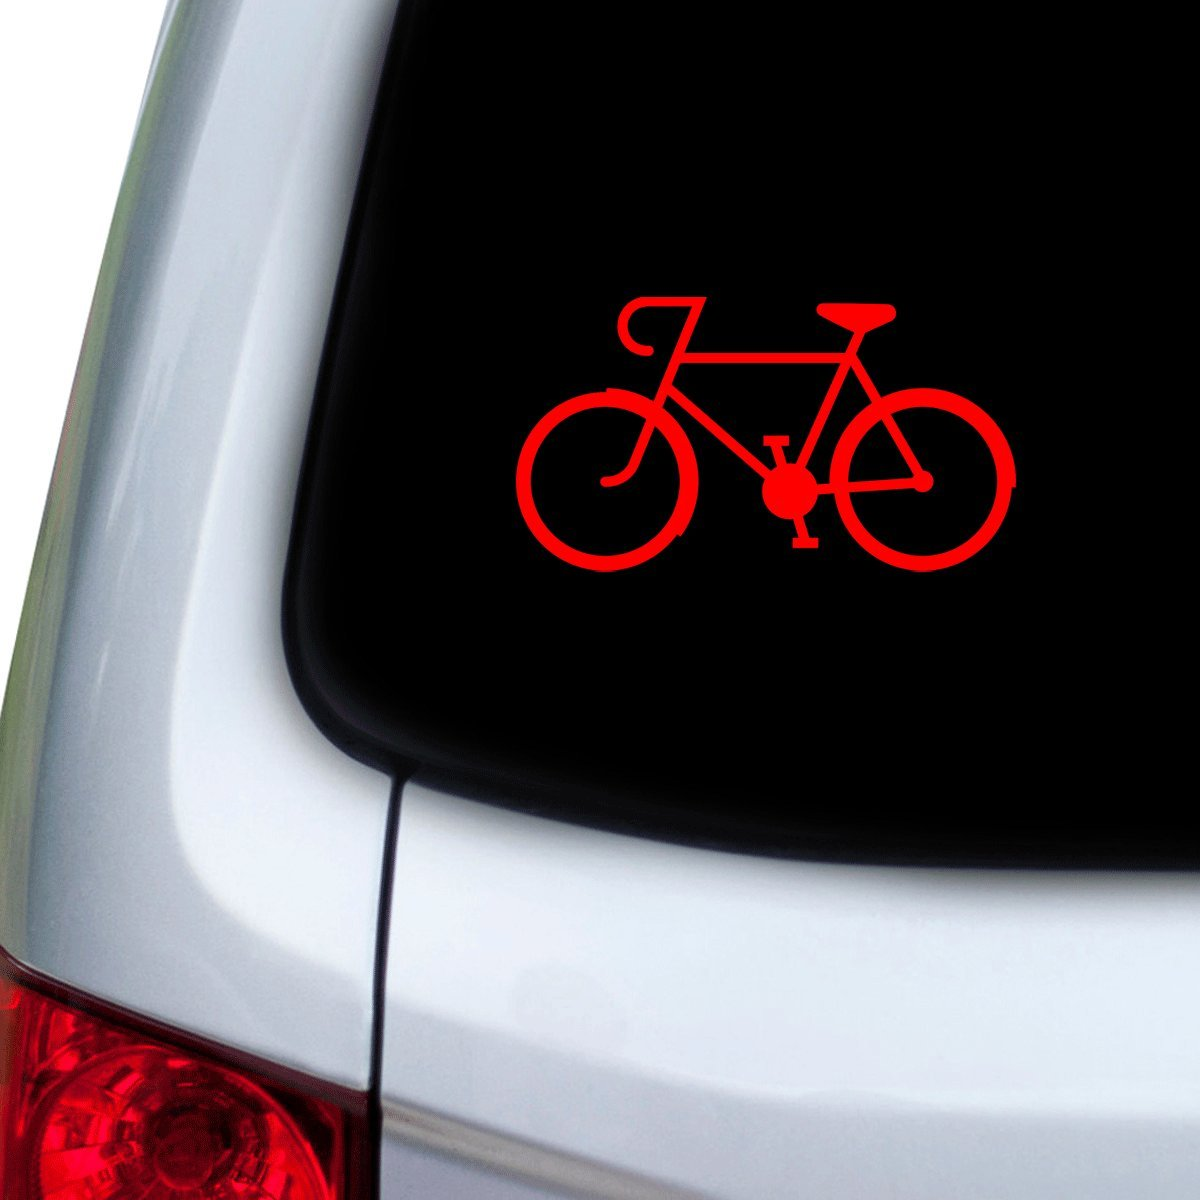 Hoods StickAny Car and Auto Decal Series Modern Bike Sticker for Windows Red Doors